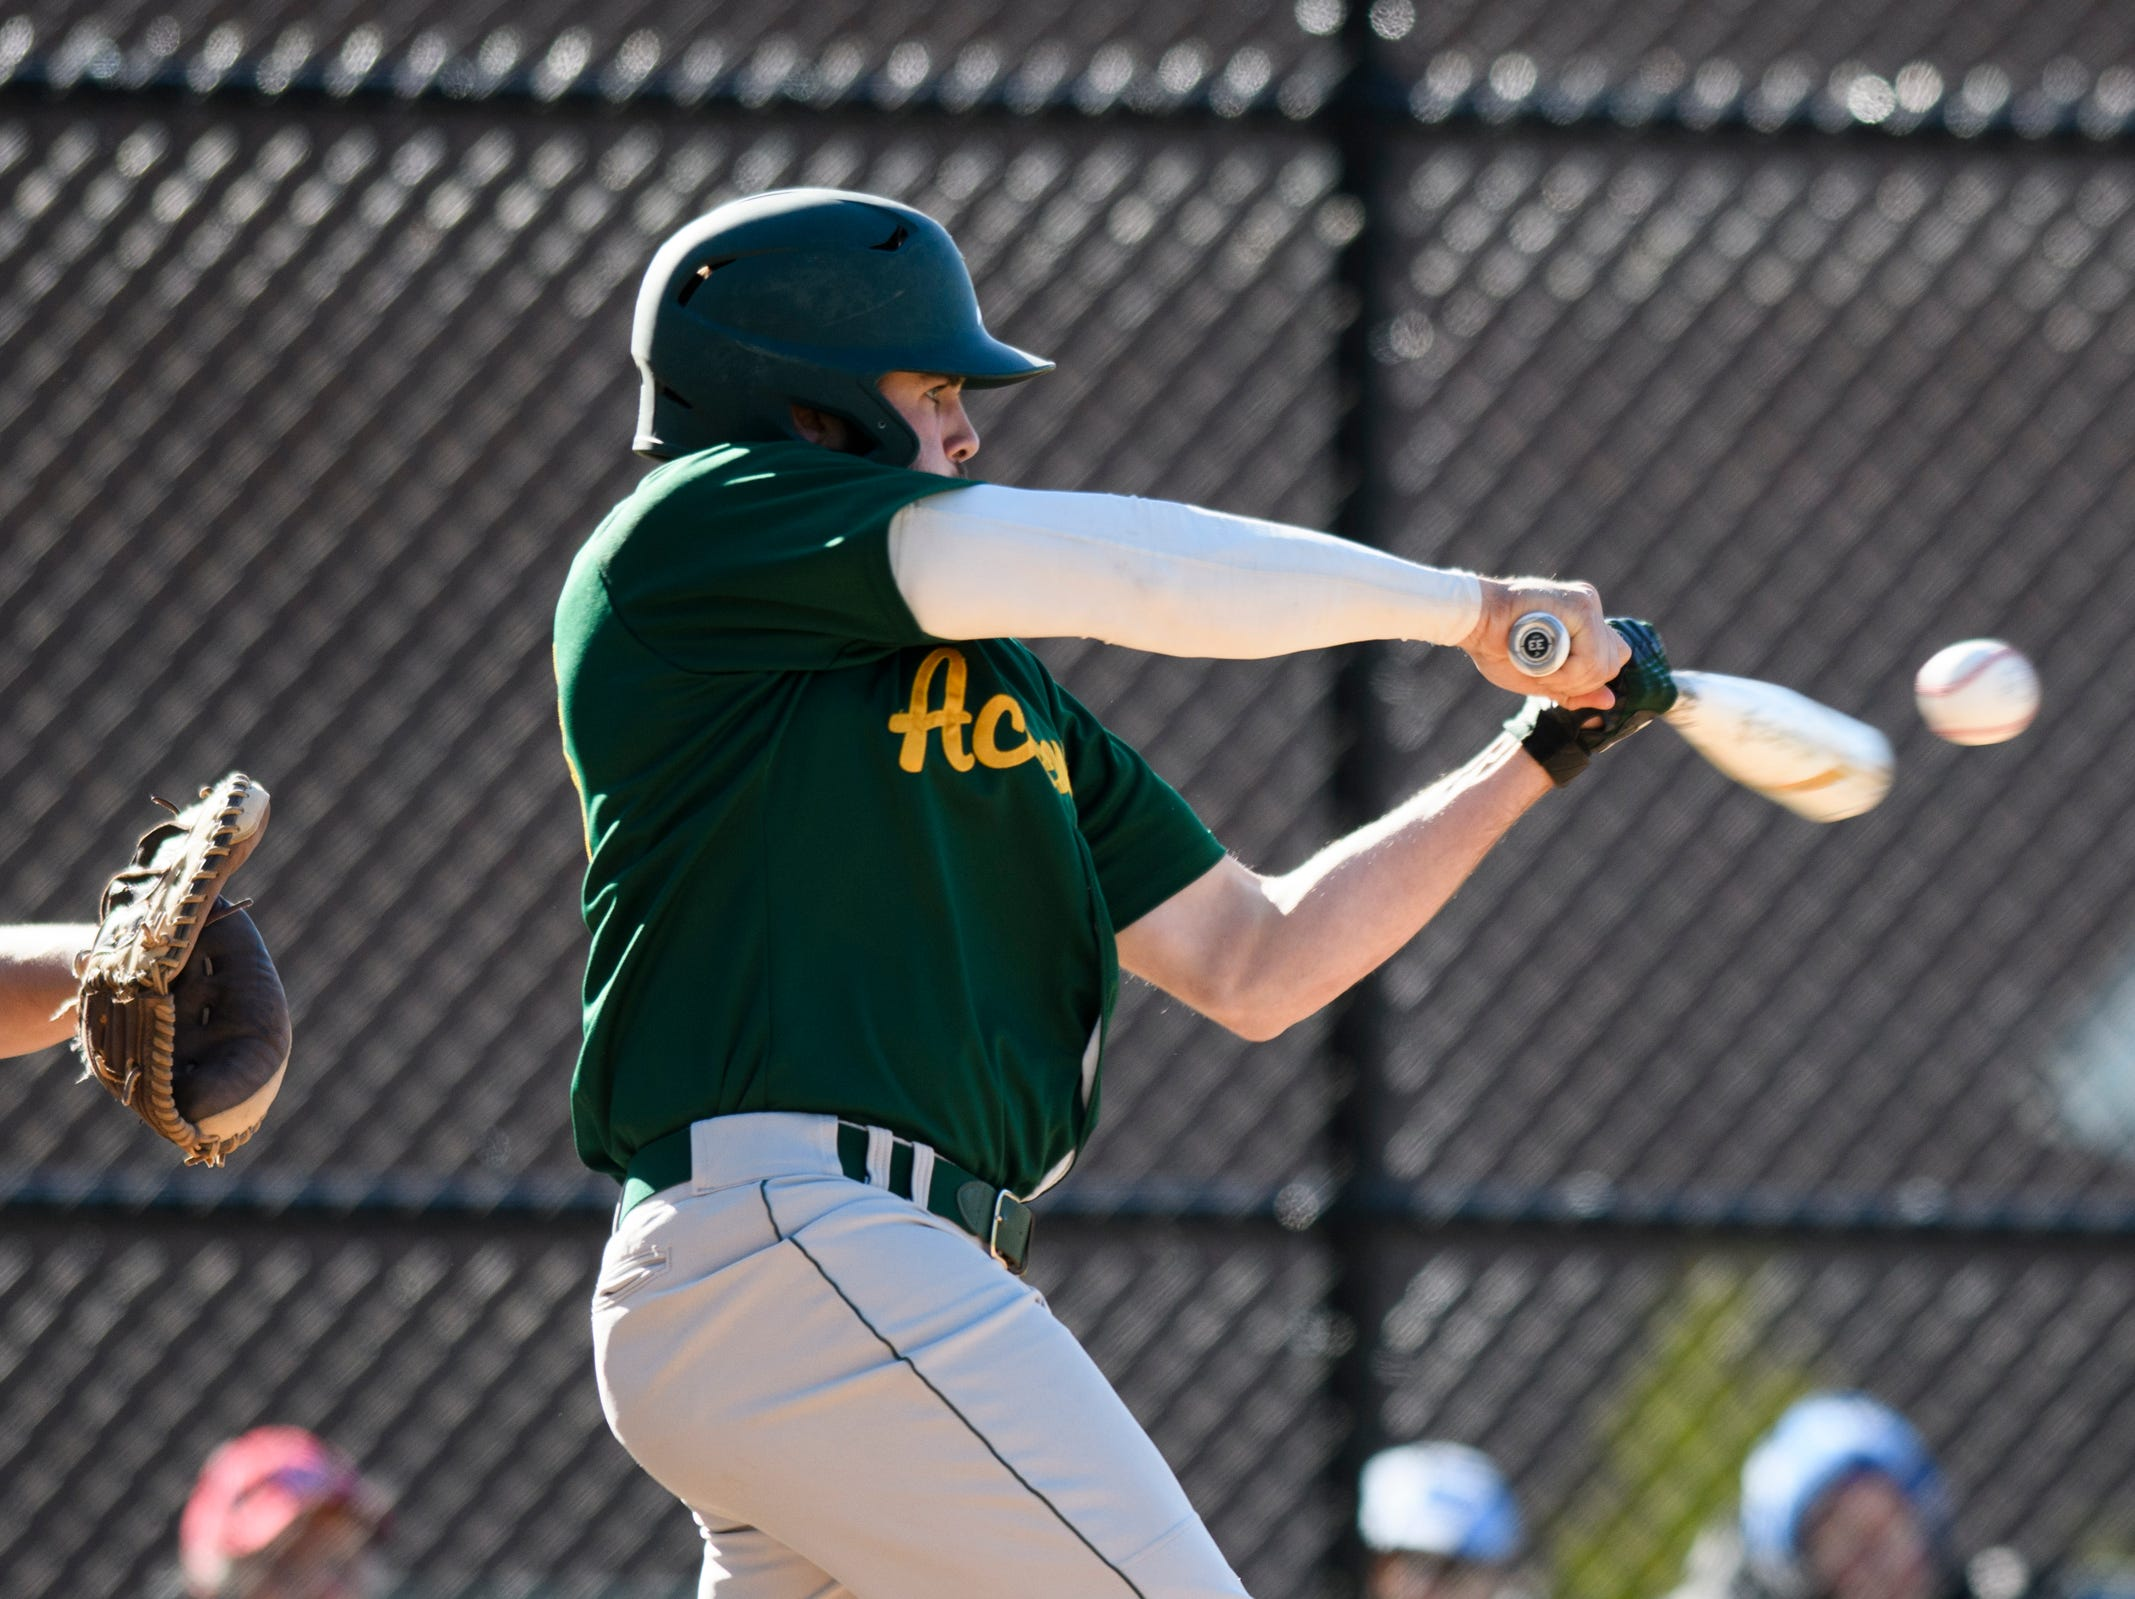 BFA's Dominic Liscinsky (13) hits the ball during the high school baseball game between BFA St. Albans and Rice at Rice Memorial High School on Wednesday afternoon May 8, 2019 in South Burlington, Vermont.